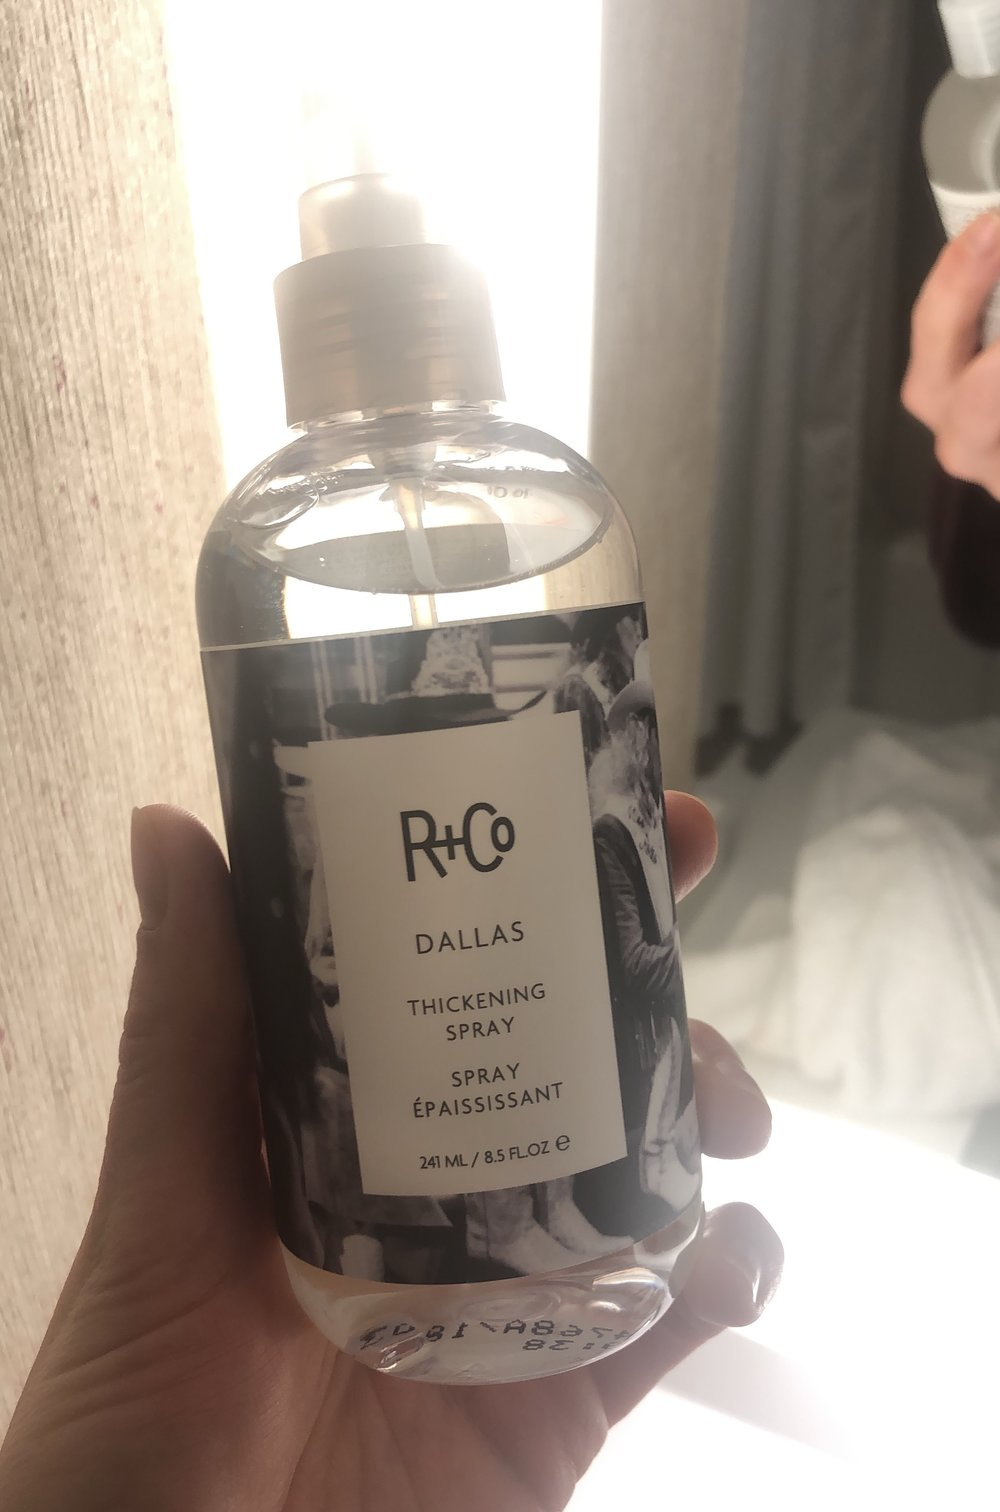 R + Co Dallas Thickening Spray -